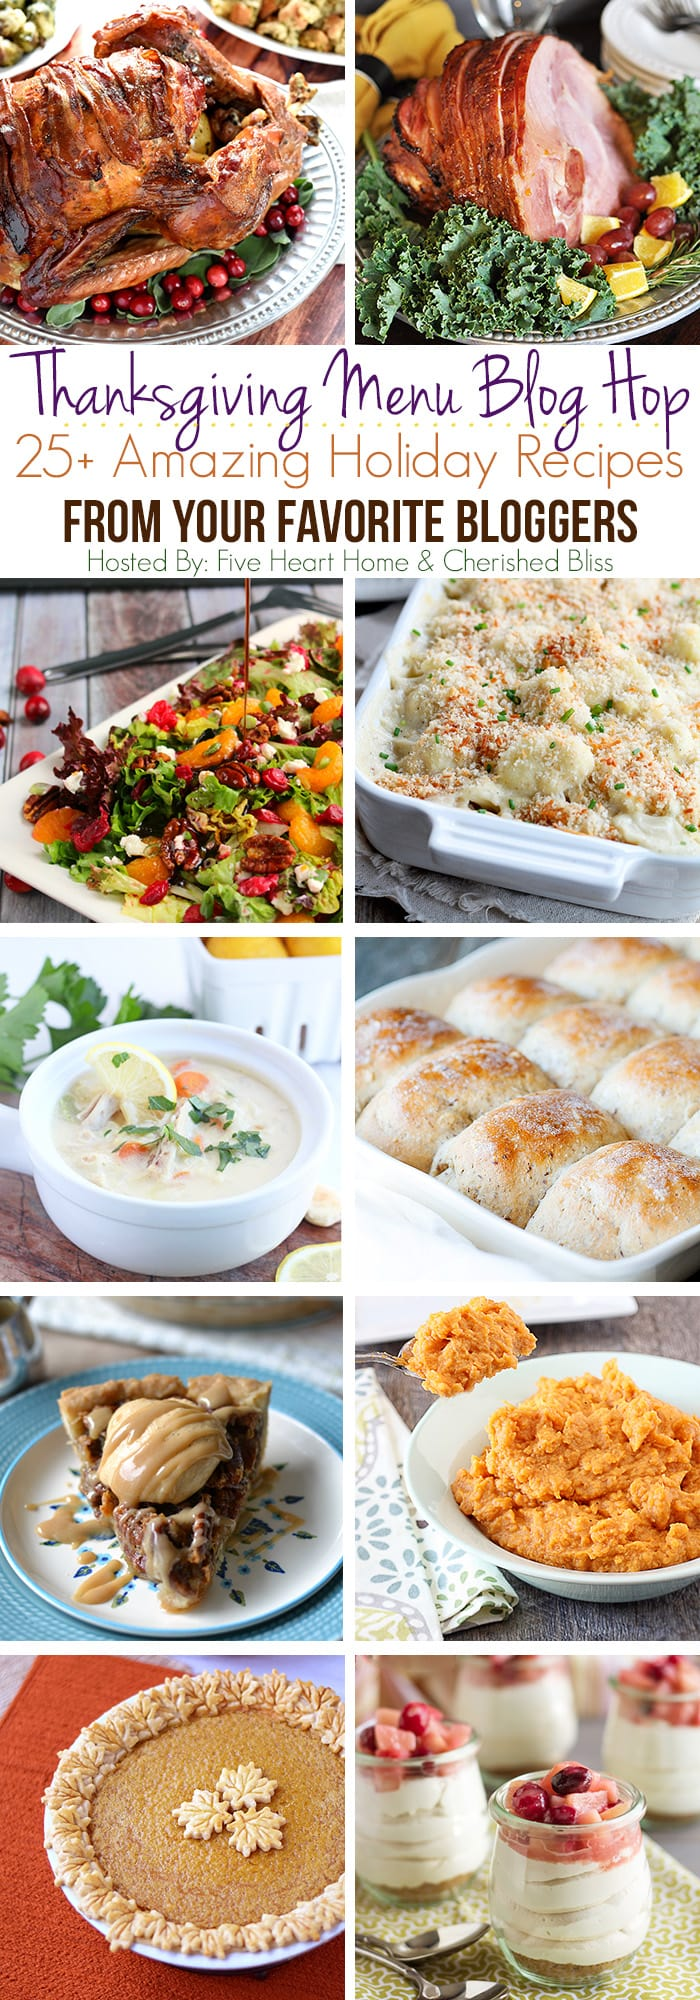 A full Thanksgiving menu right at your fingertips! Amazing recipes from turkey to dessert  via maisondepax.com #fall #recipe